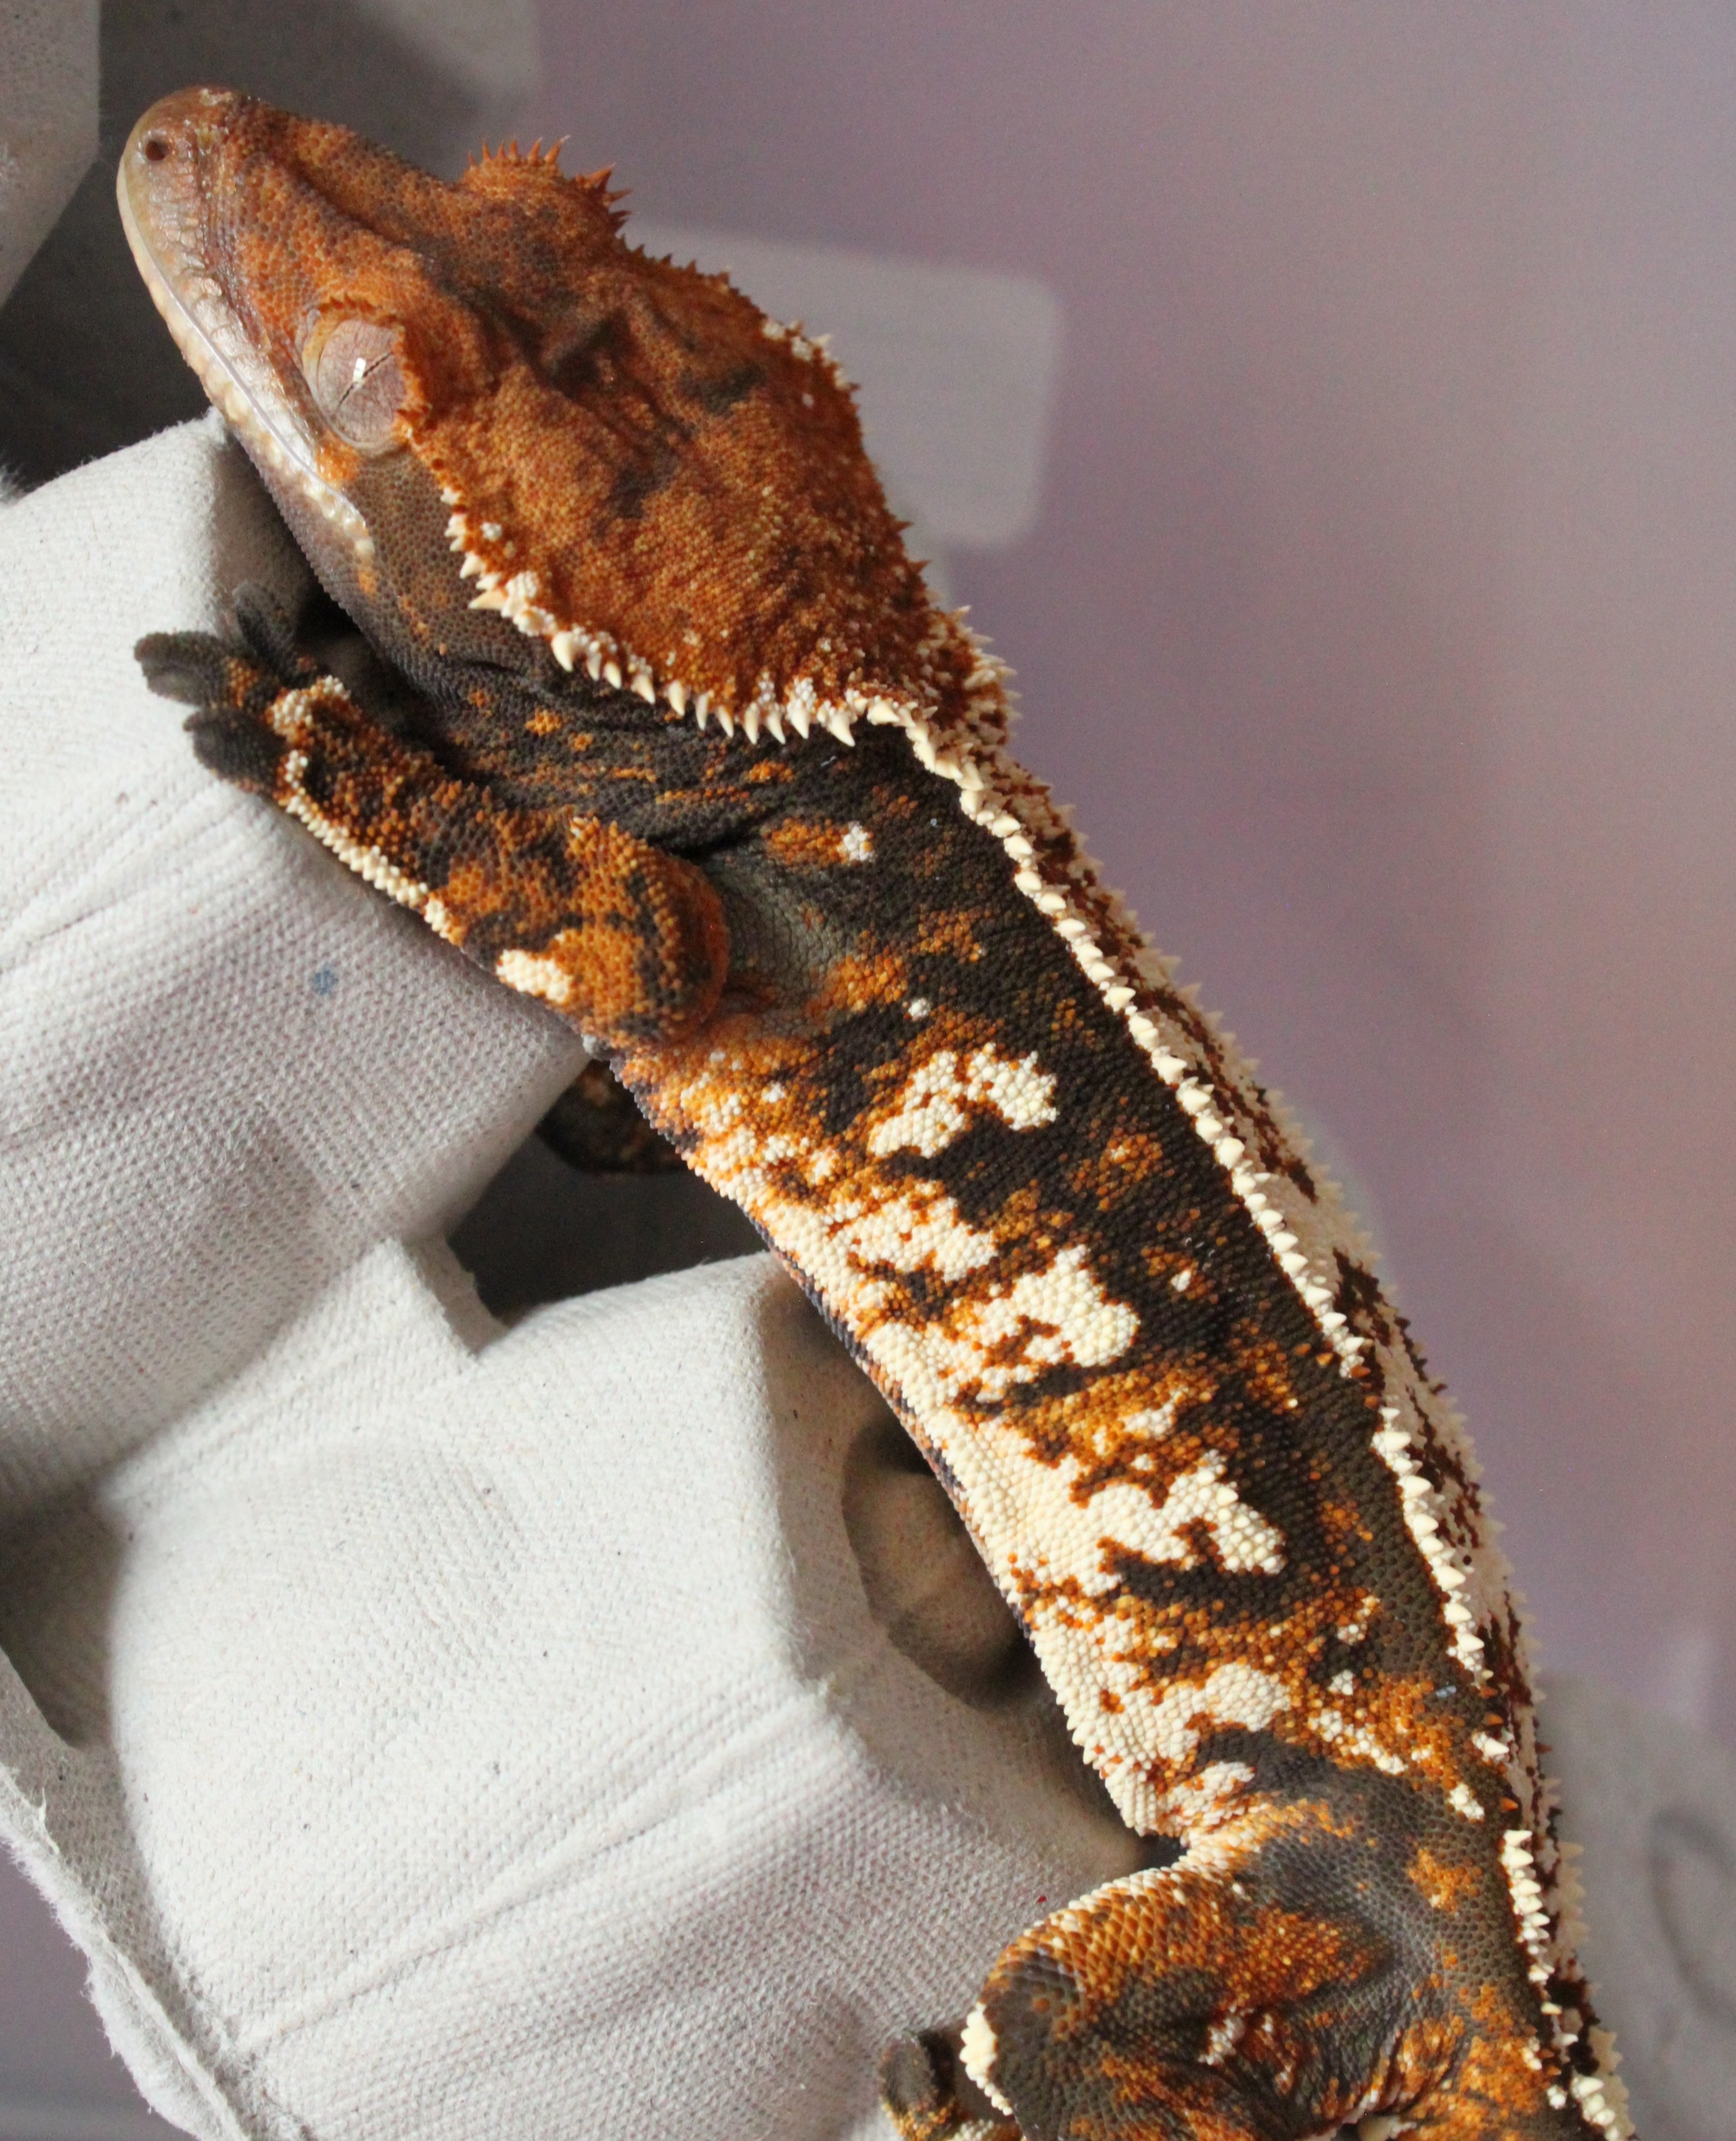 Snickers - Extreme Tri-color W/80% Pin Stripe: A daughter of Blaze & Magma, Snickers is one stunning gecko! I love her crest and its gorgeous white tips. I can not wait to see this girl grown and to see in a few years what she might produce! She also has the most pinning out of all the babies on this list, so she'll be one of the ones who'll be used first to try and get full pin stripe extreme tri-colored babies!